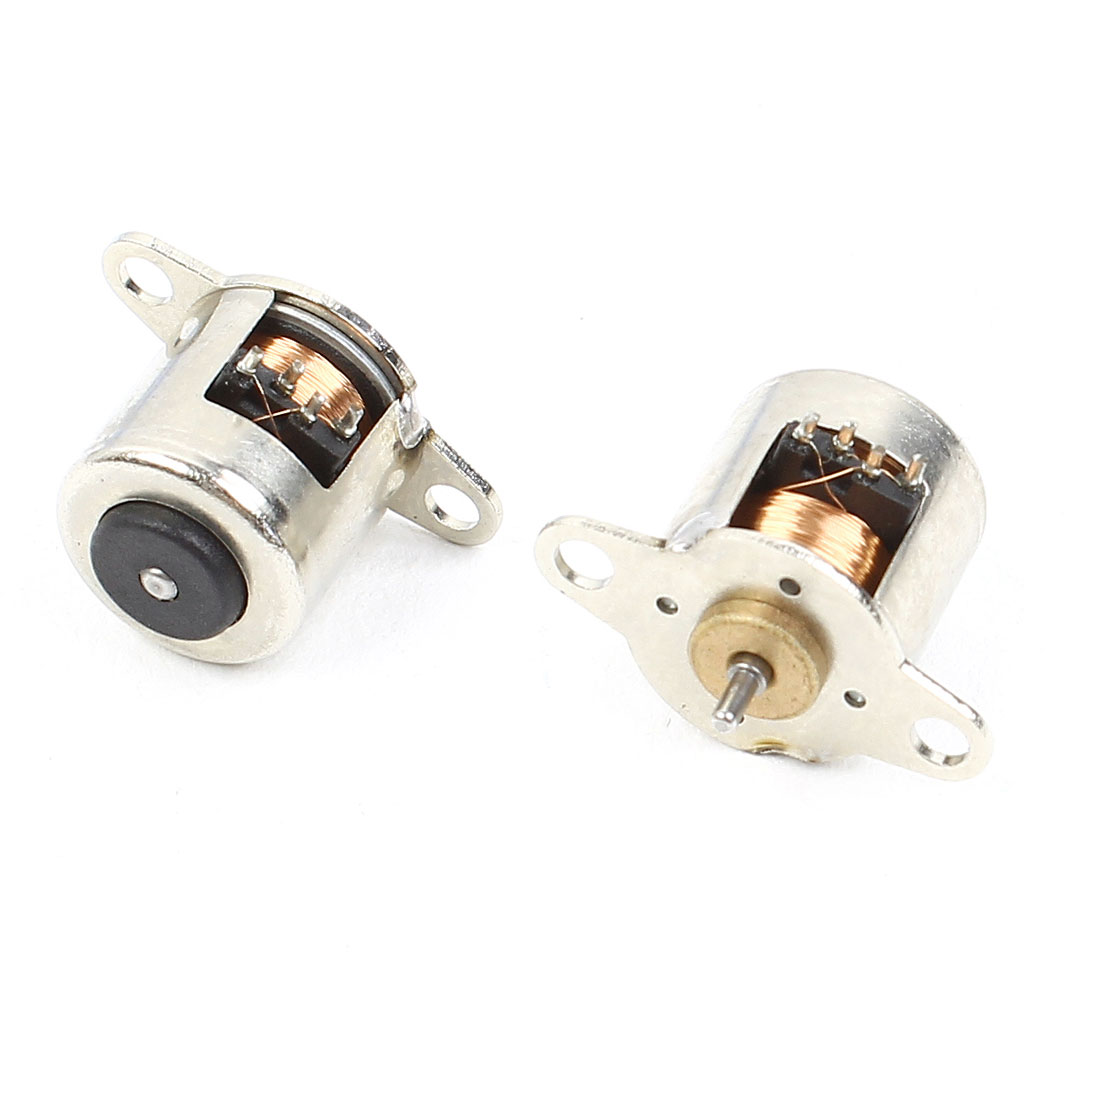 2pcs 15mm Height 3mmx1mm Shaft 10mm Diameter Stepper Motor Silver Tone